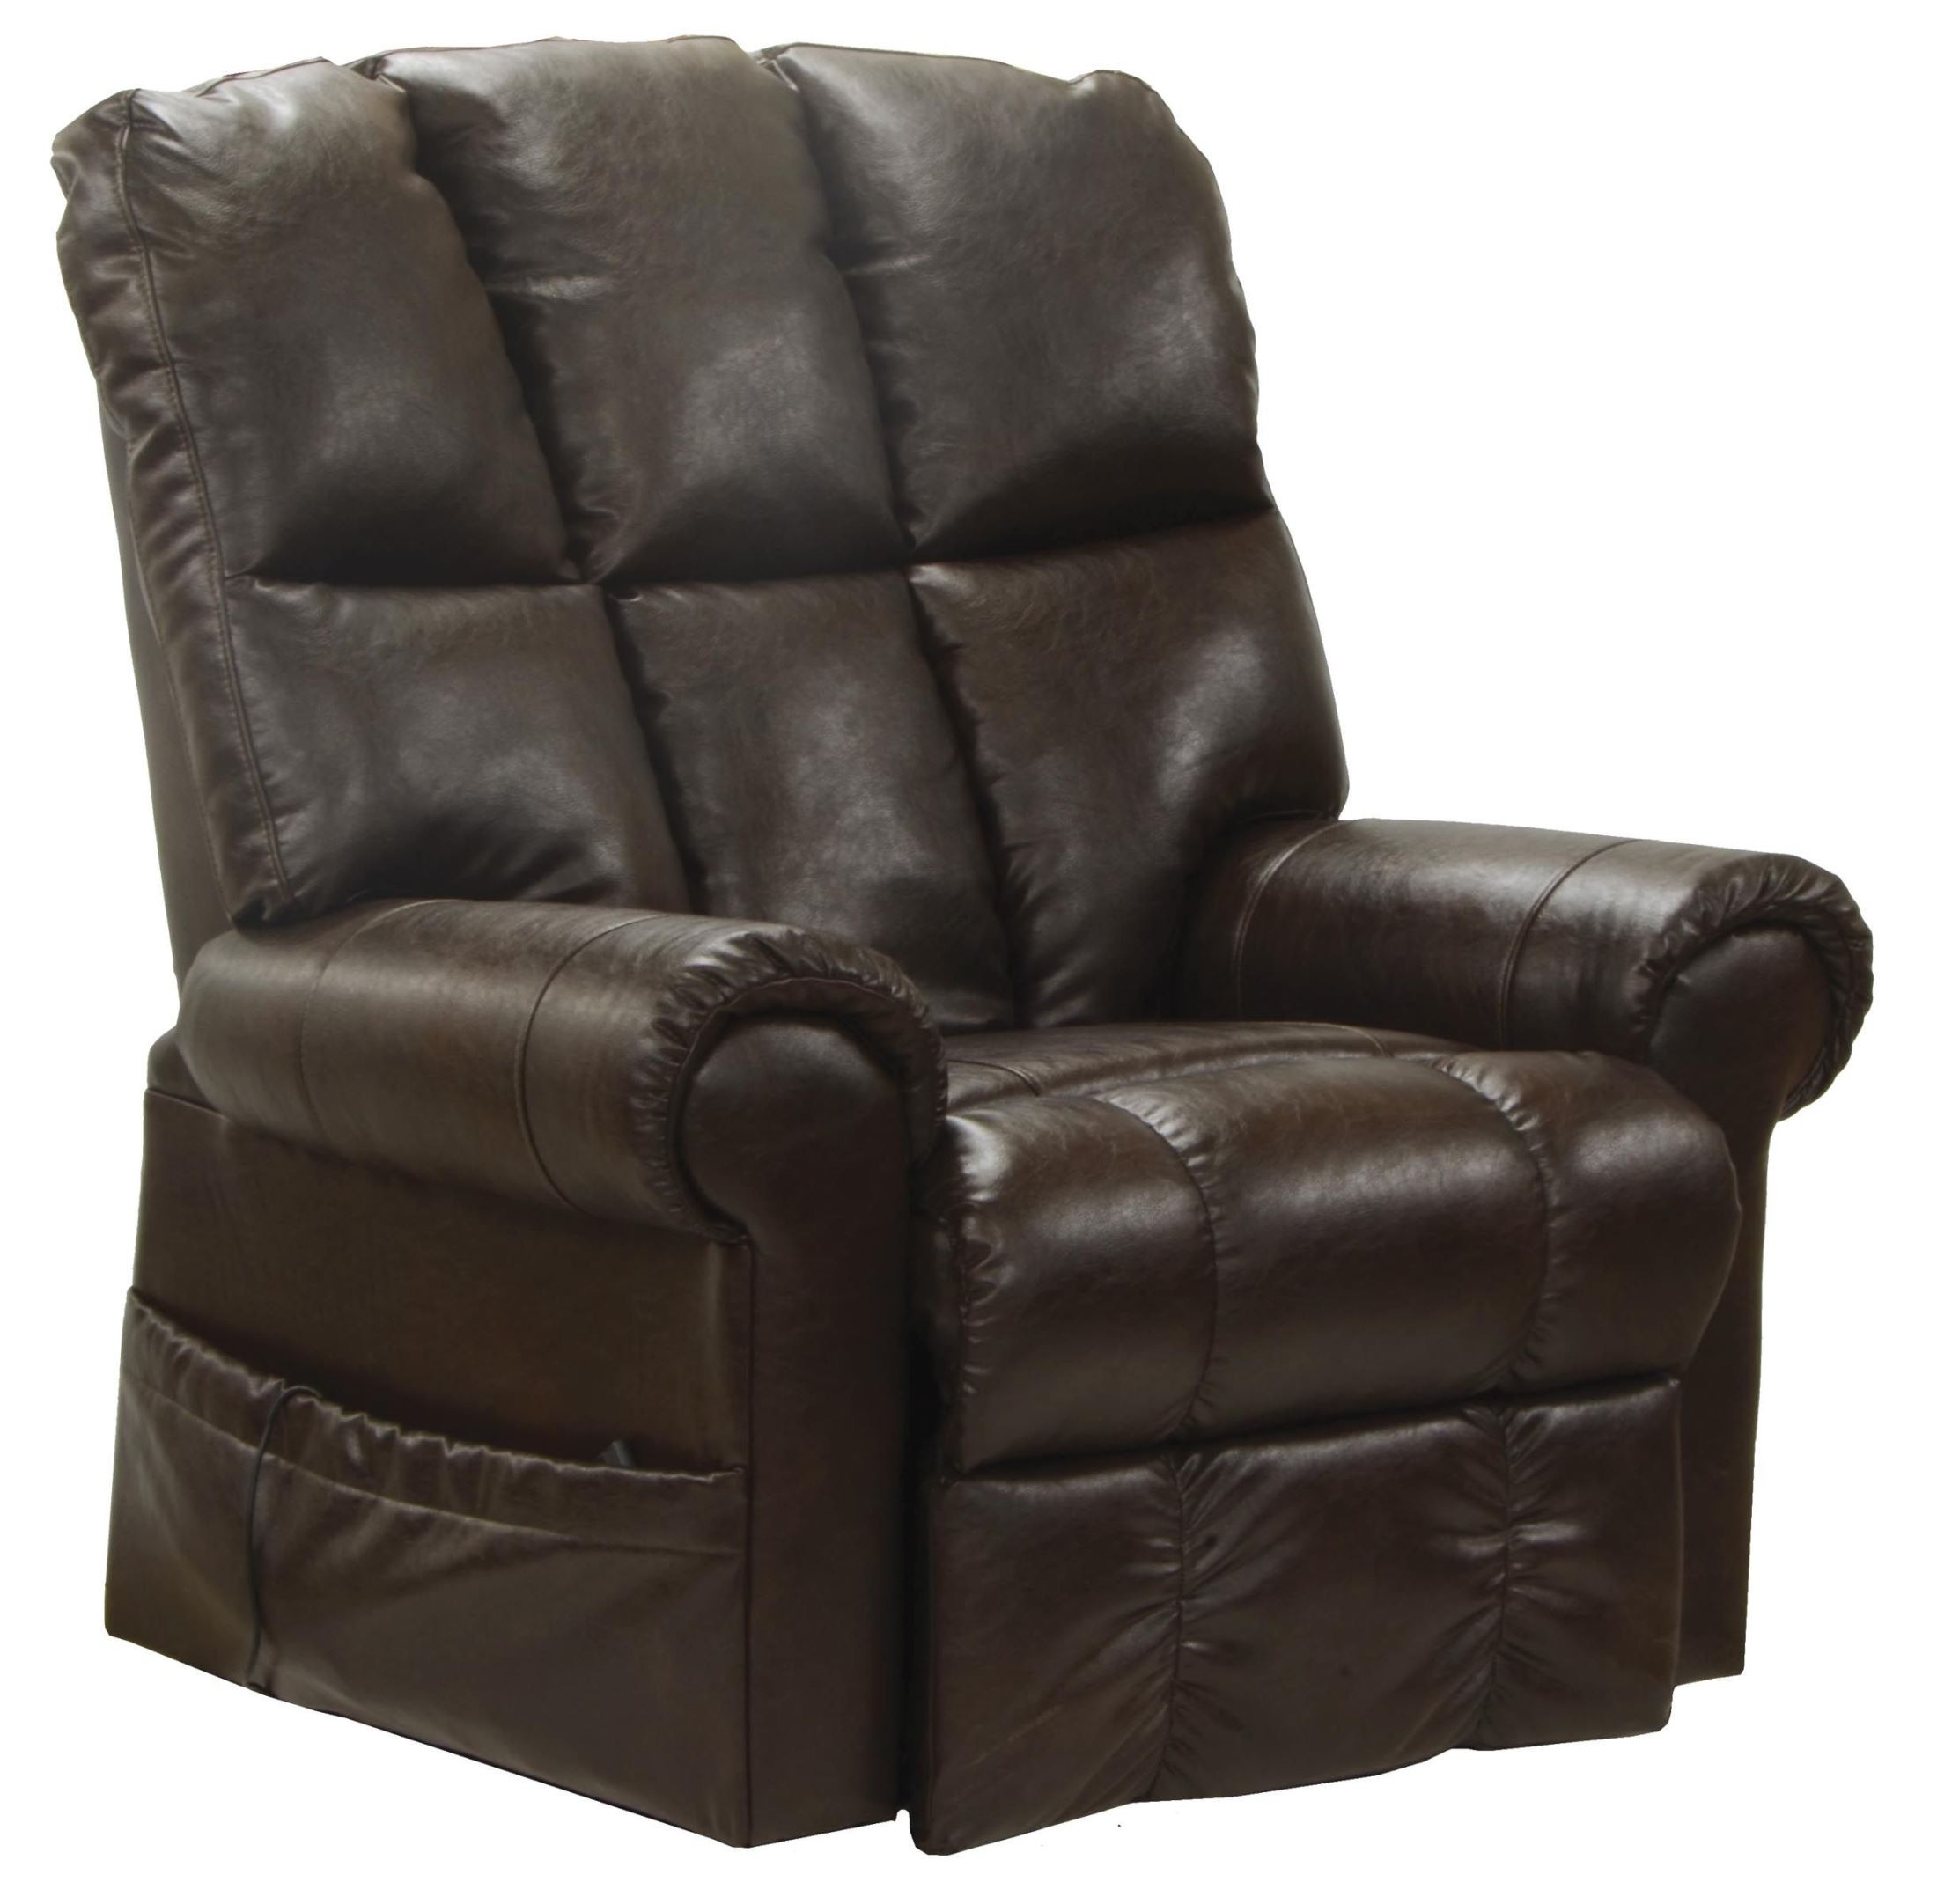 Templeton hershey leather power recliner from catnapper for Catnapper cloud nine chaise recliner